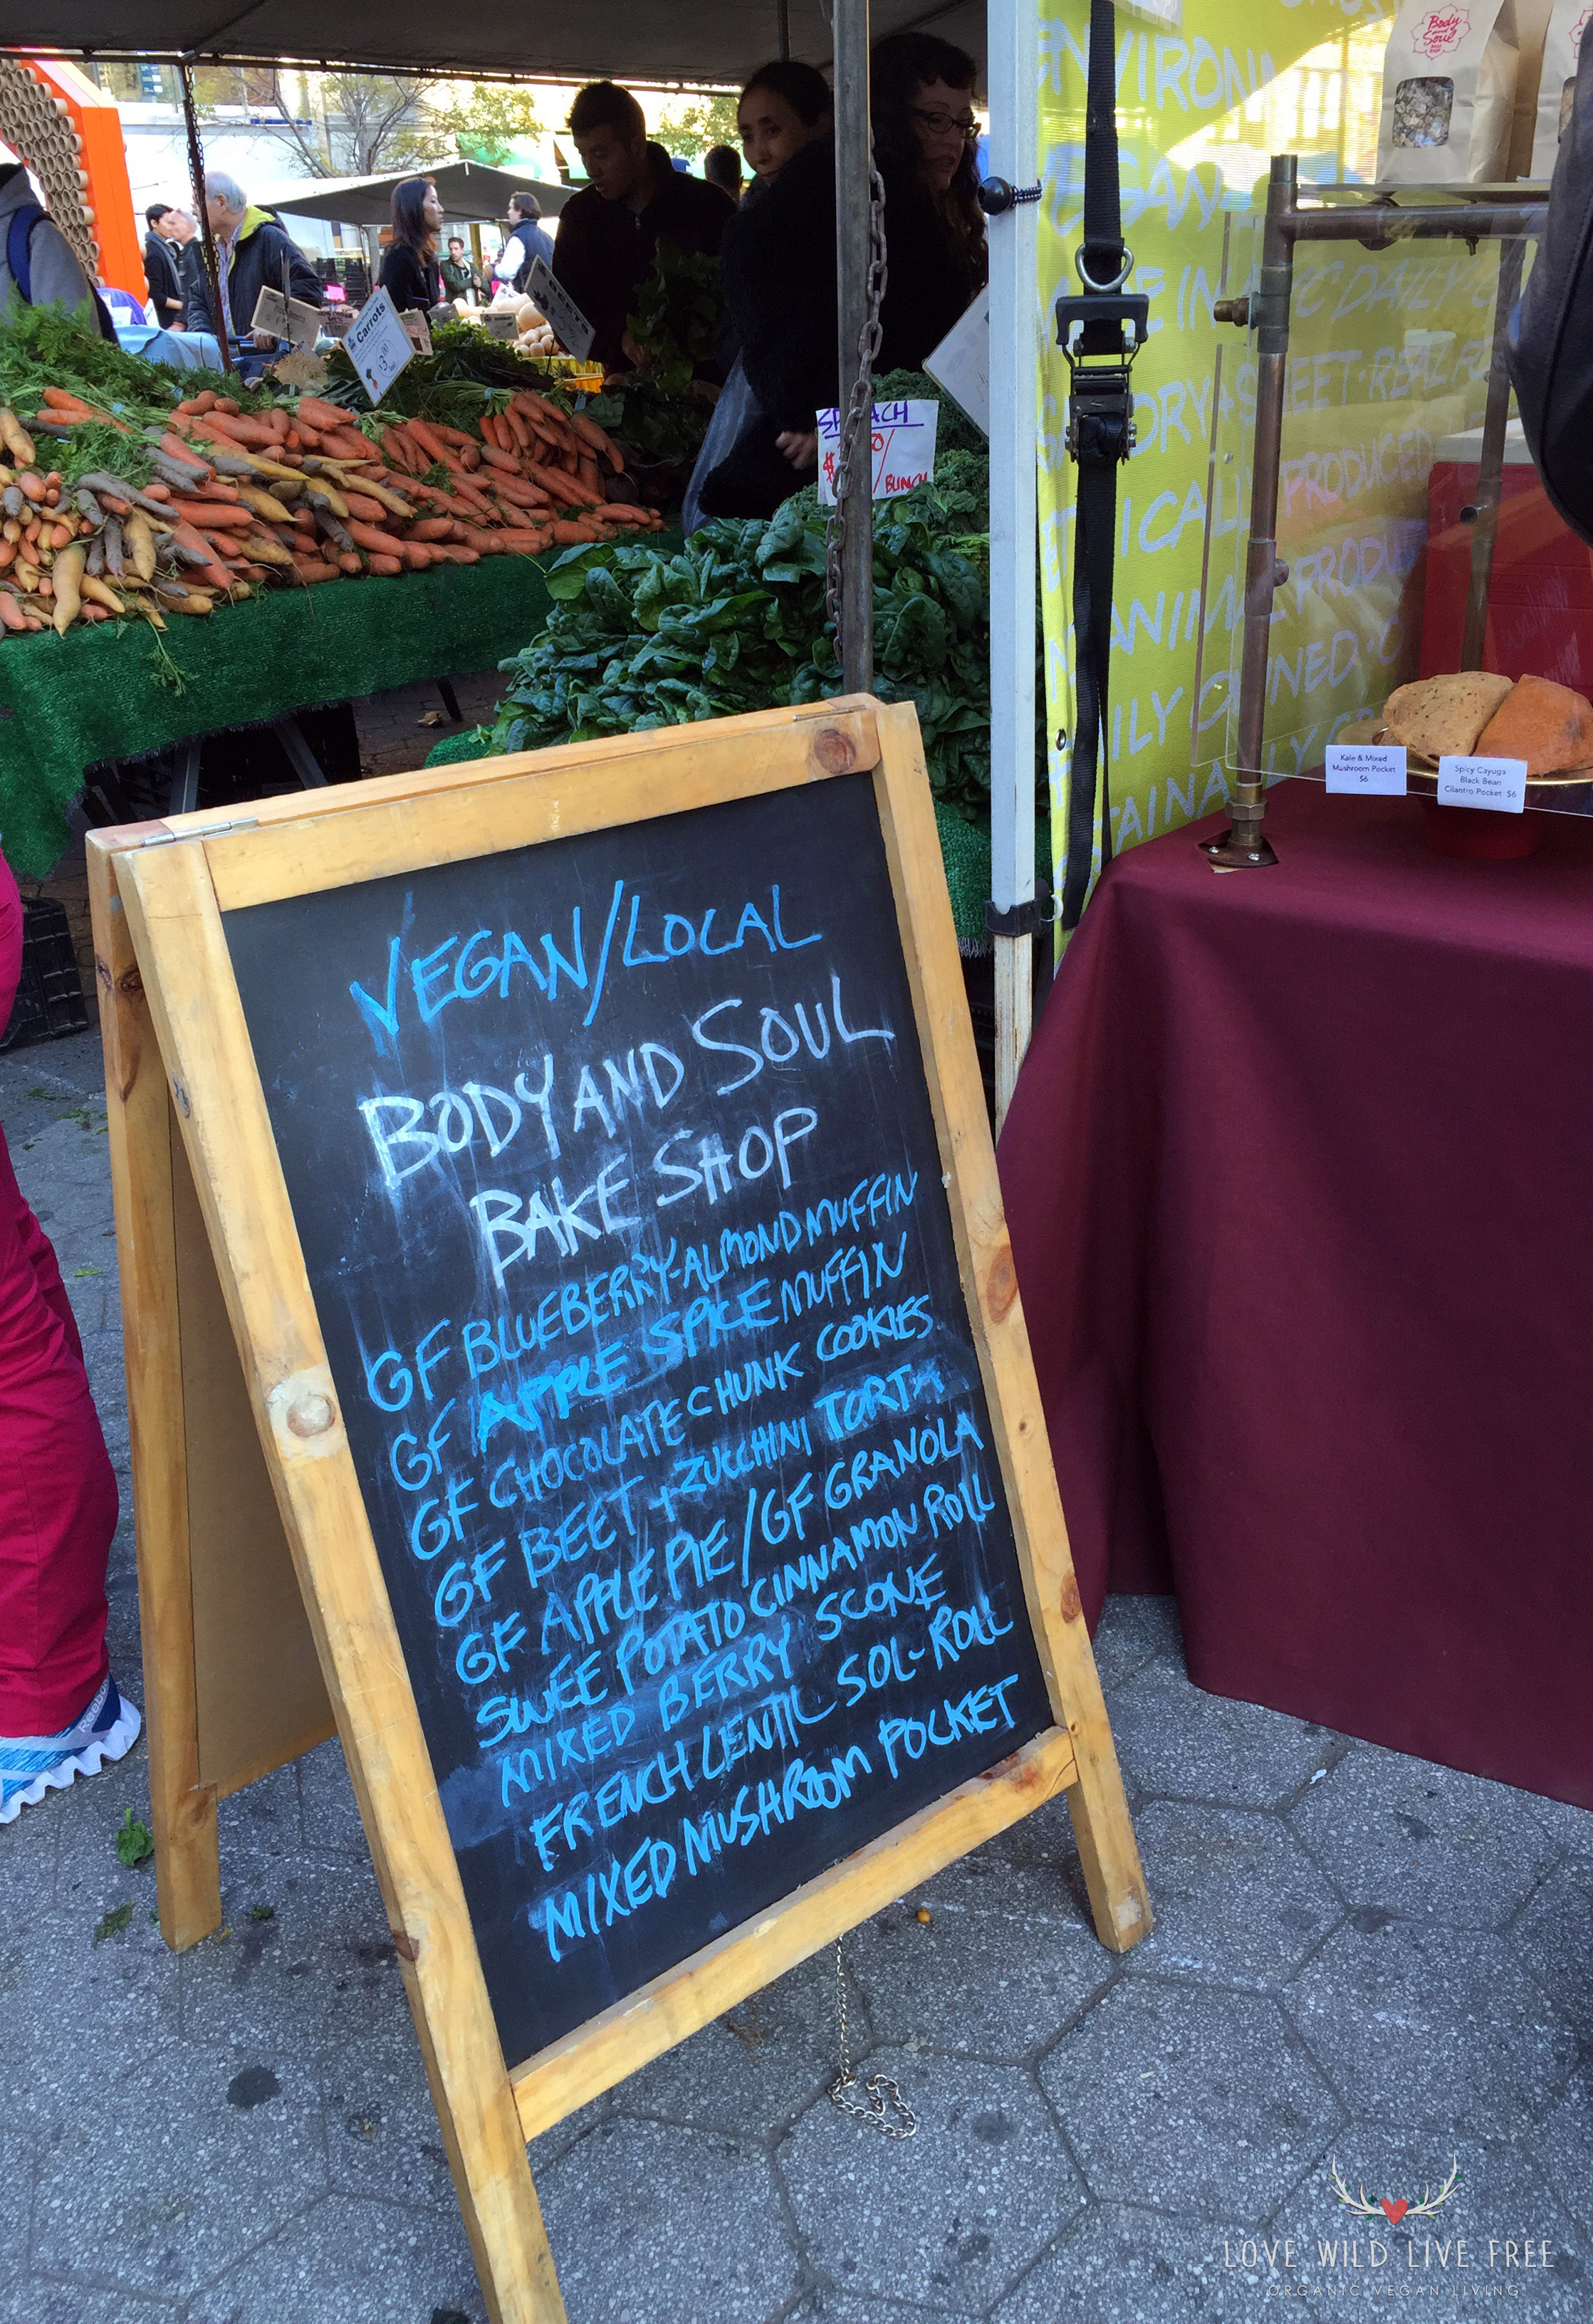 Daily offerings from Body and Soul Bake Shop   at GrowNYC's Greenmarket in Union Square.  Photo by Love Wild Live Free.